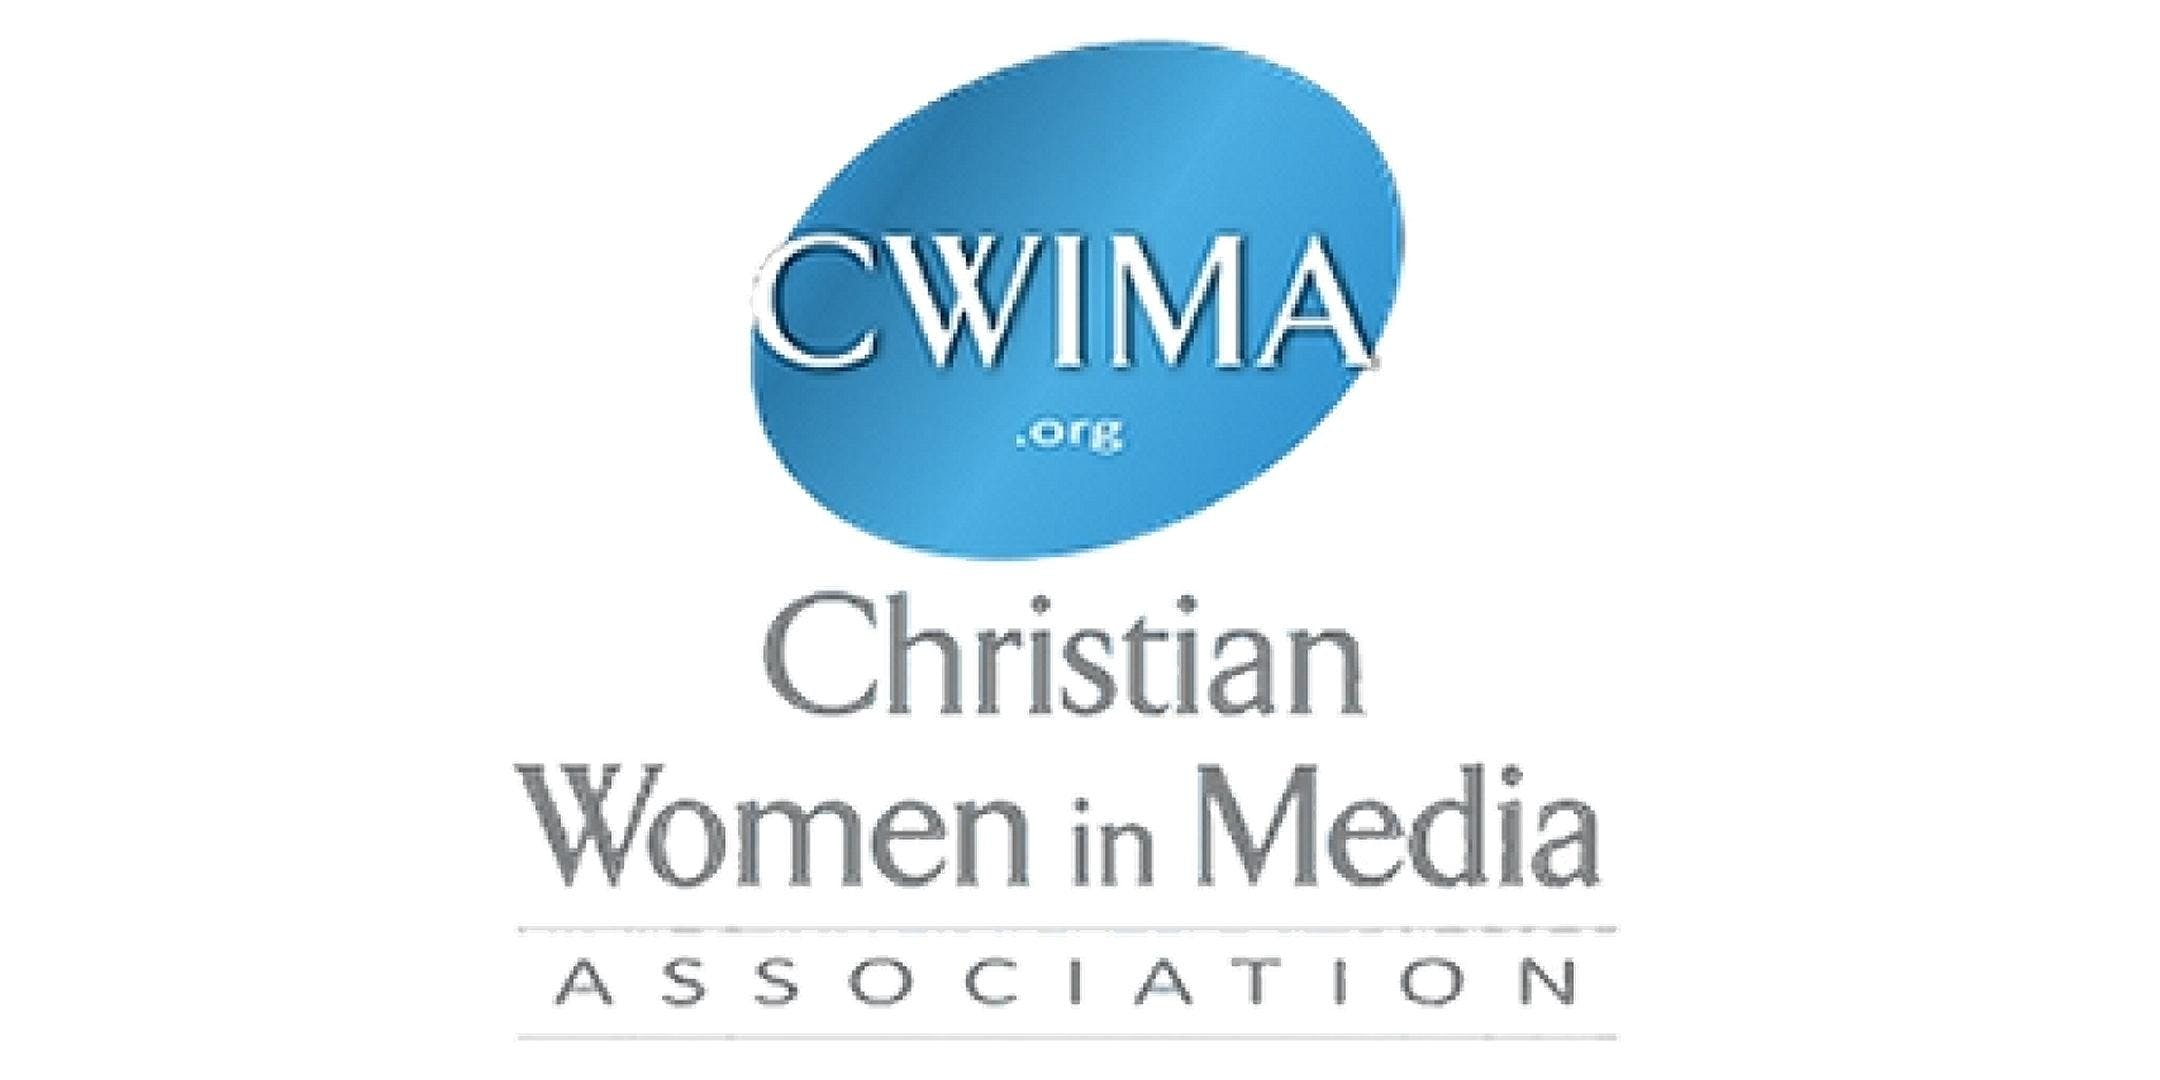 CWIMA Connect Event - New York, NY - September 19, 2019